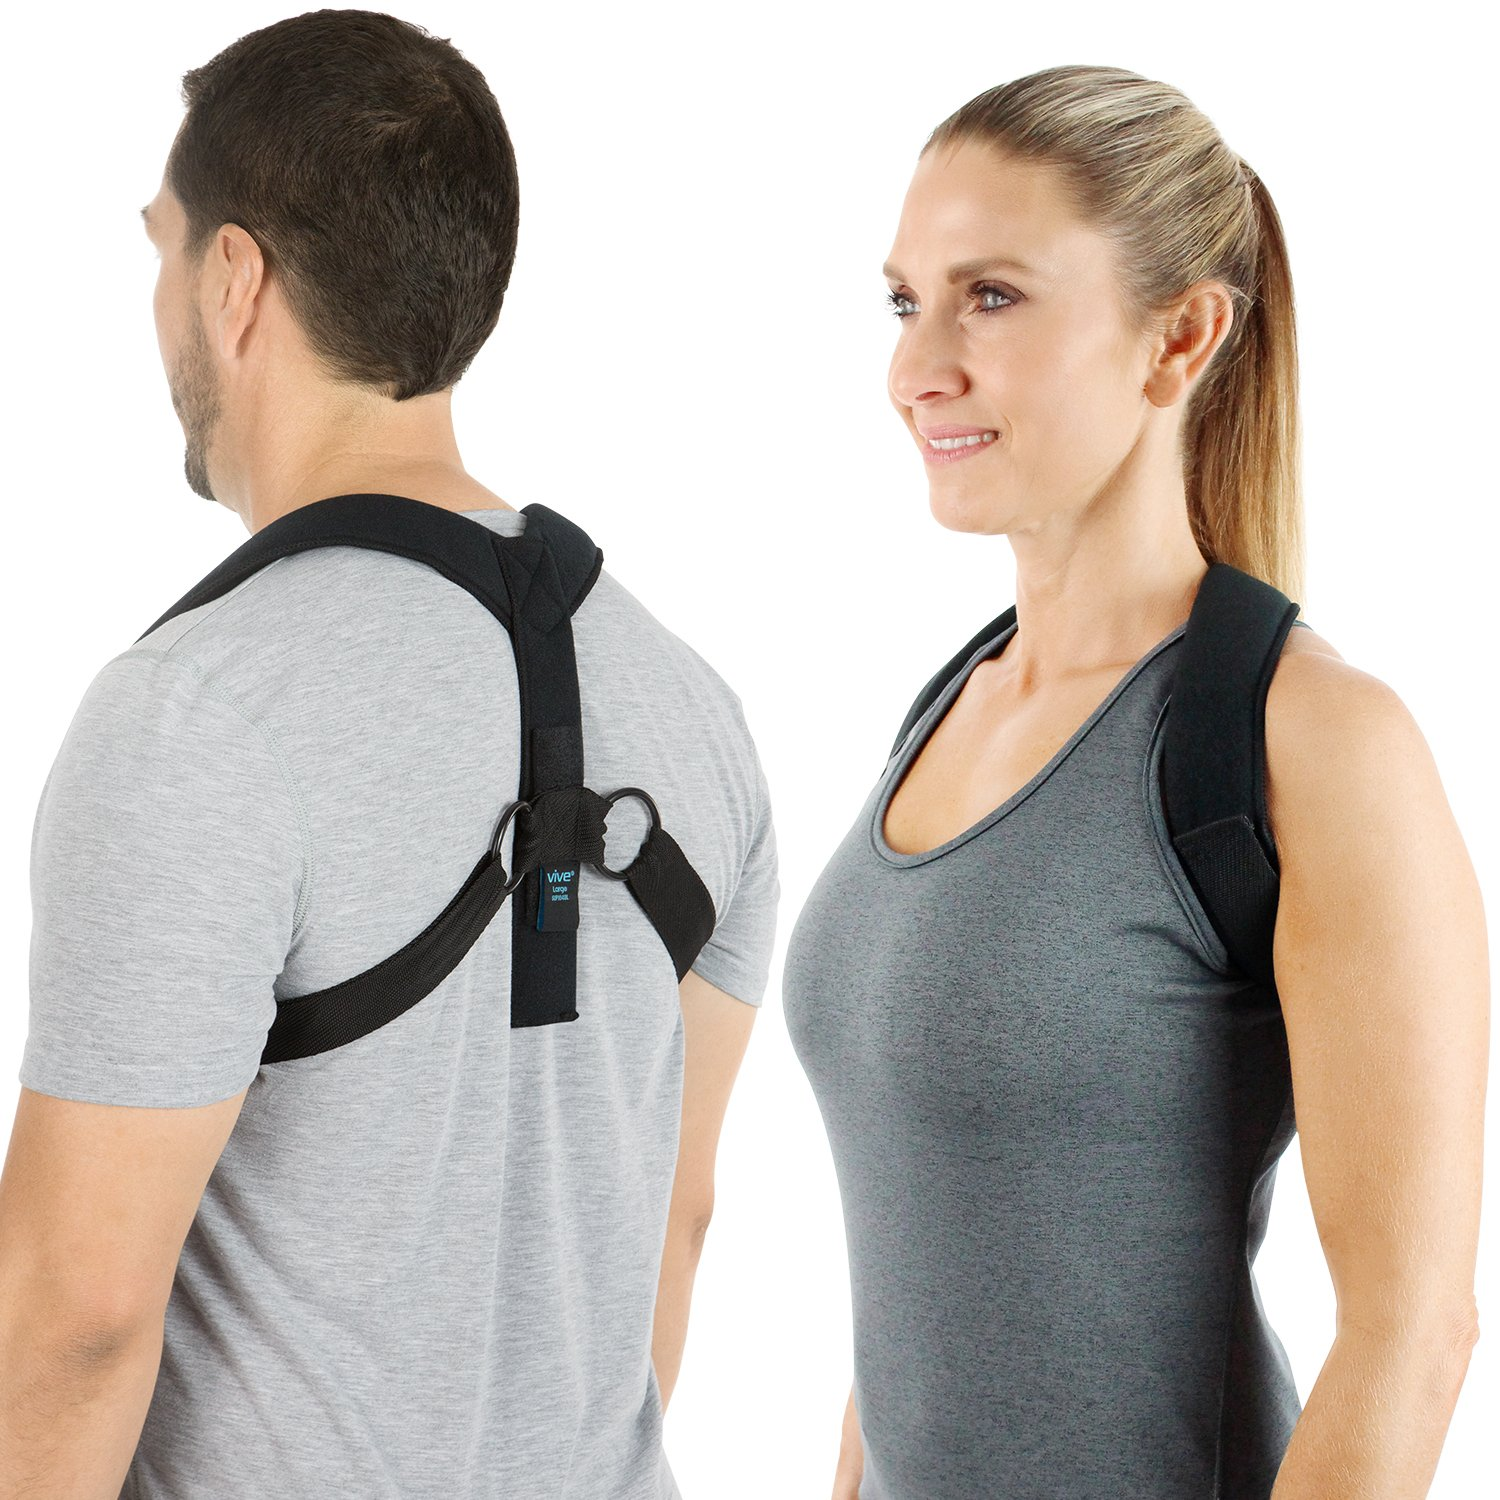 Posture Corrector Brace by Vive - Men and Women Corrective Shoulder Device - Support for Rounded Shoulder - Upper Back Straightener Improves Poor, Bad, Stooped, Forward Head and Neck Alignment (Large)